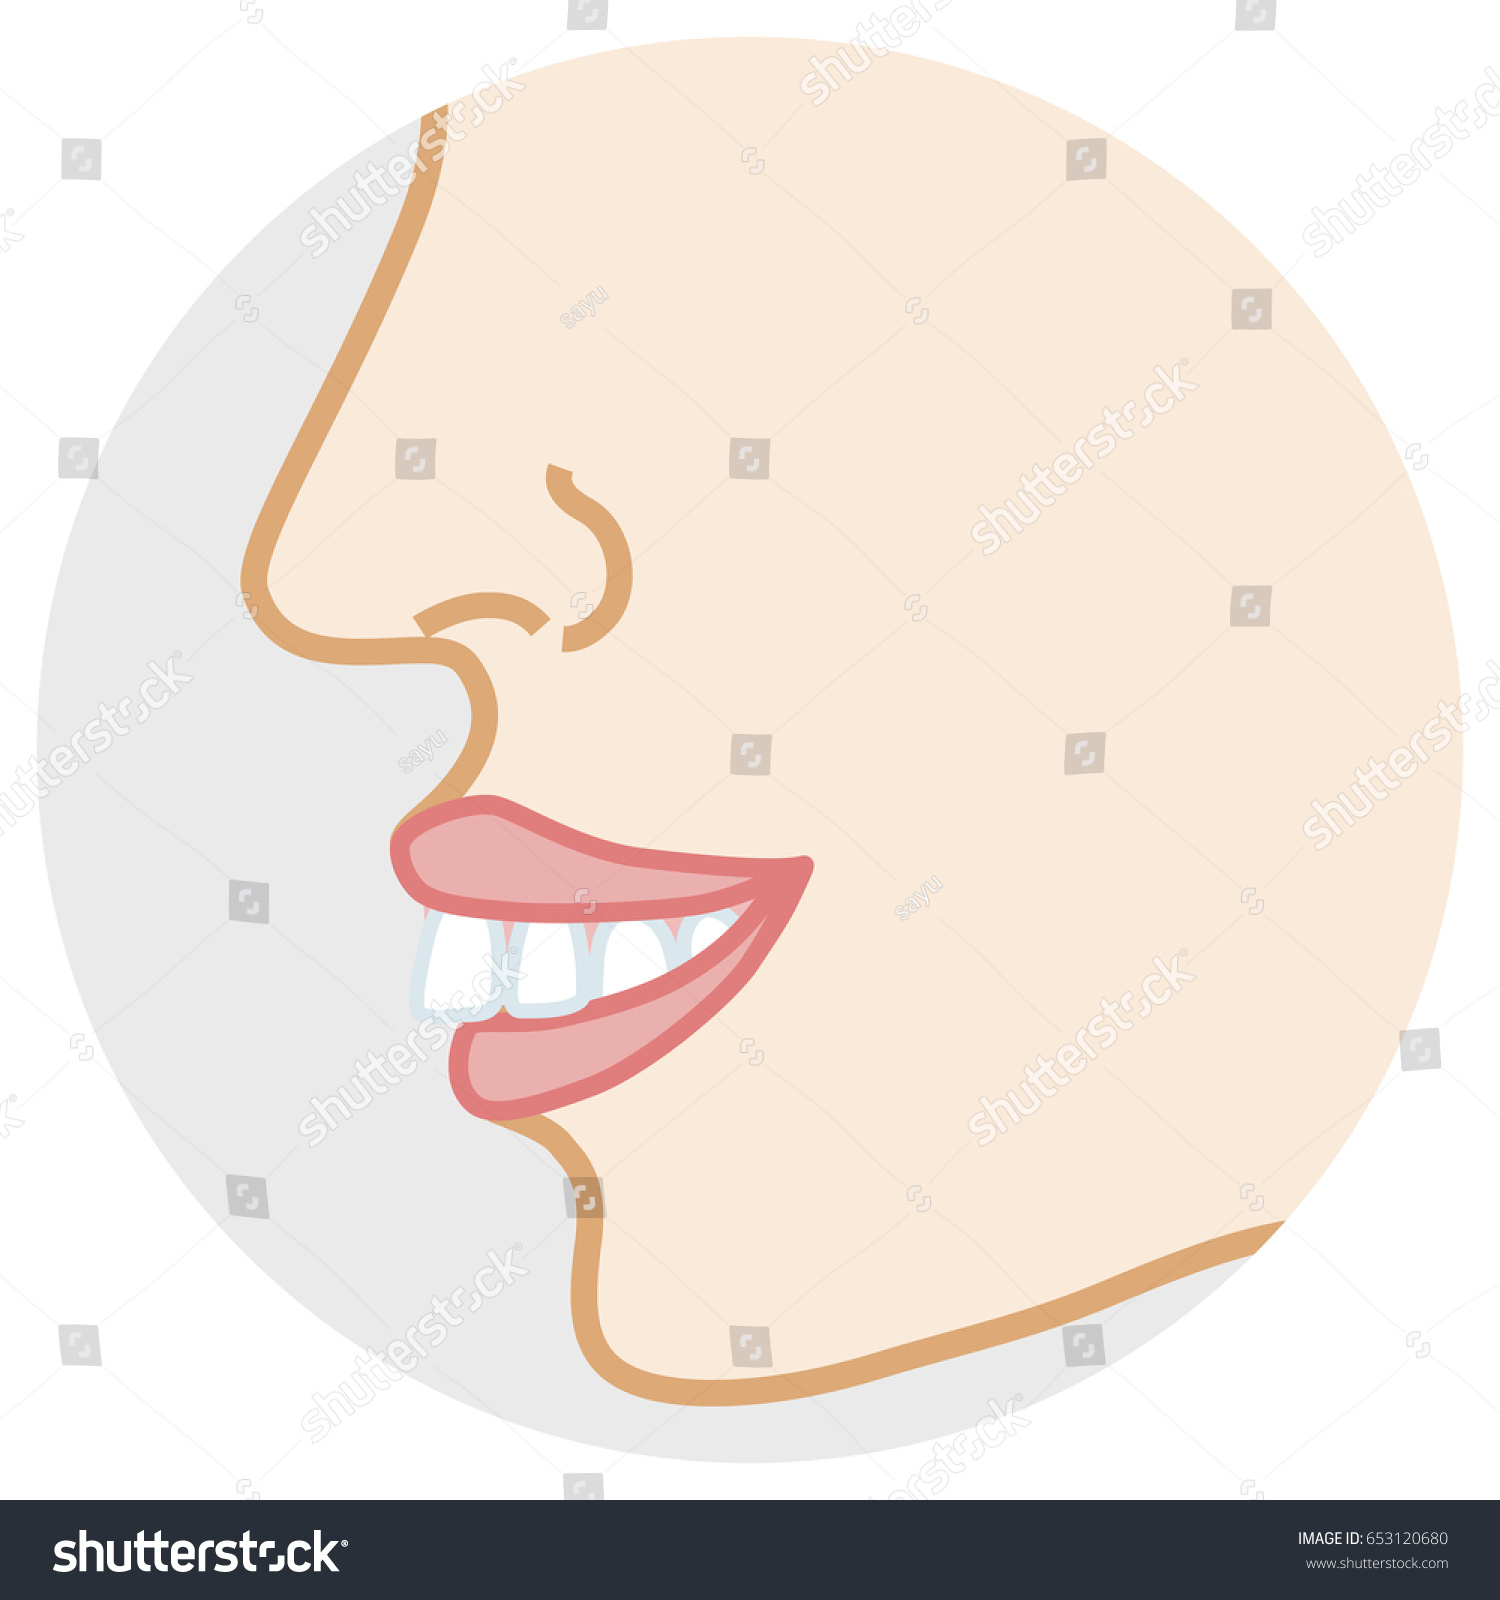 hight resolution of overbite teeth face close up side view